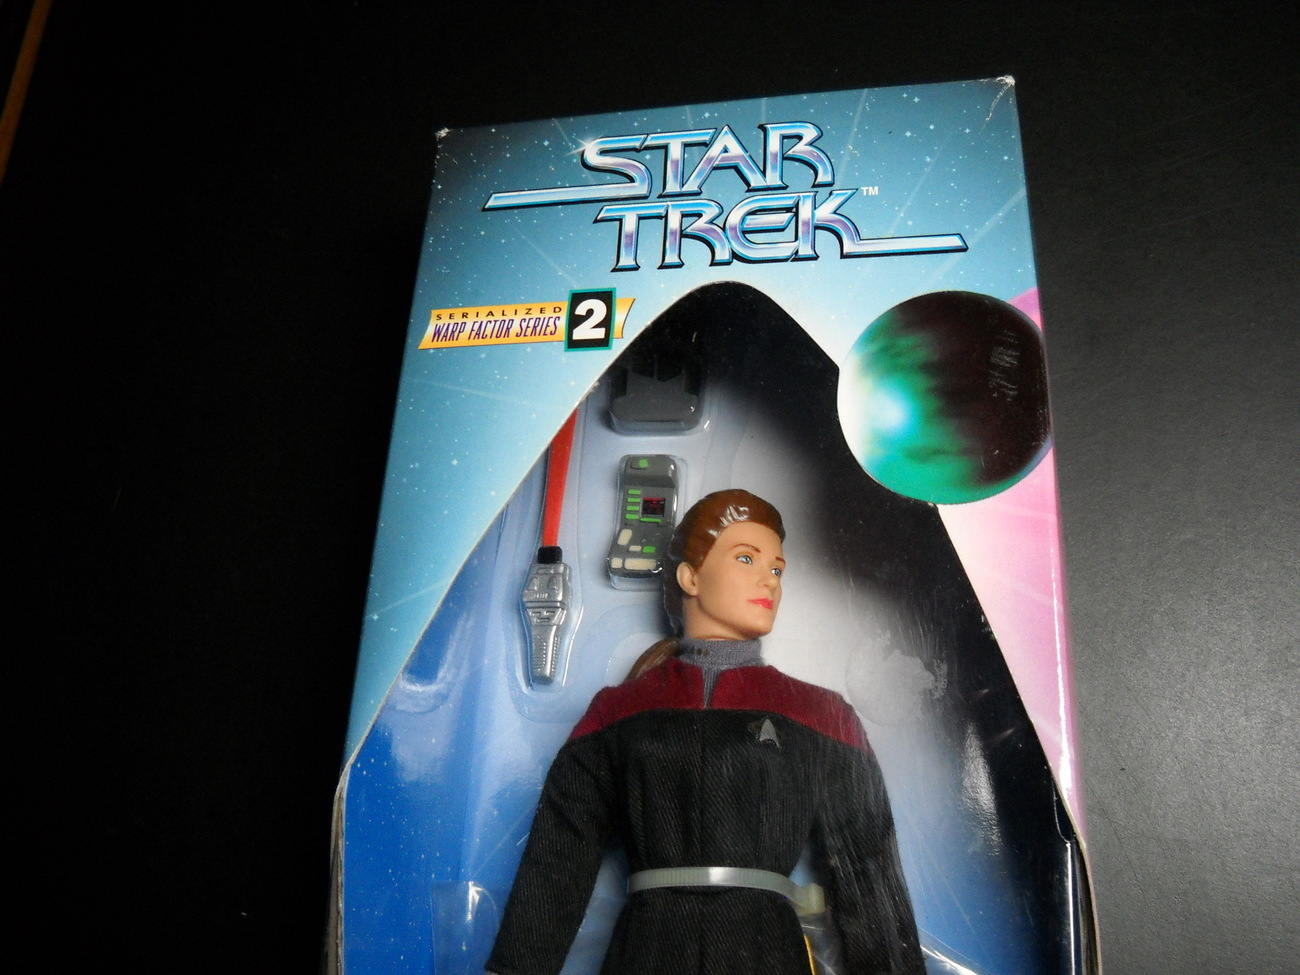 Star Trek Warp Factor Two Captain Kathryn Janeway Voyager Playmates Sealed Box